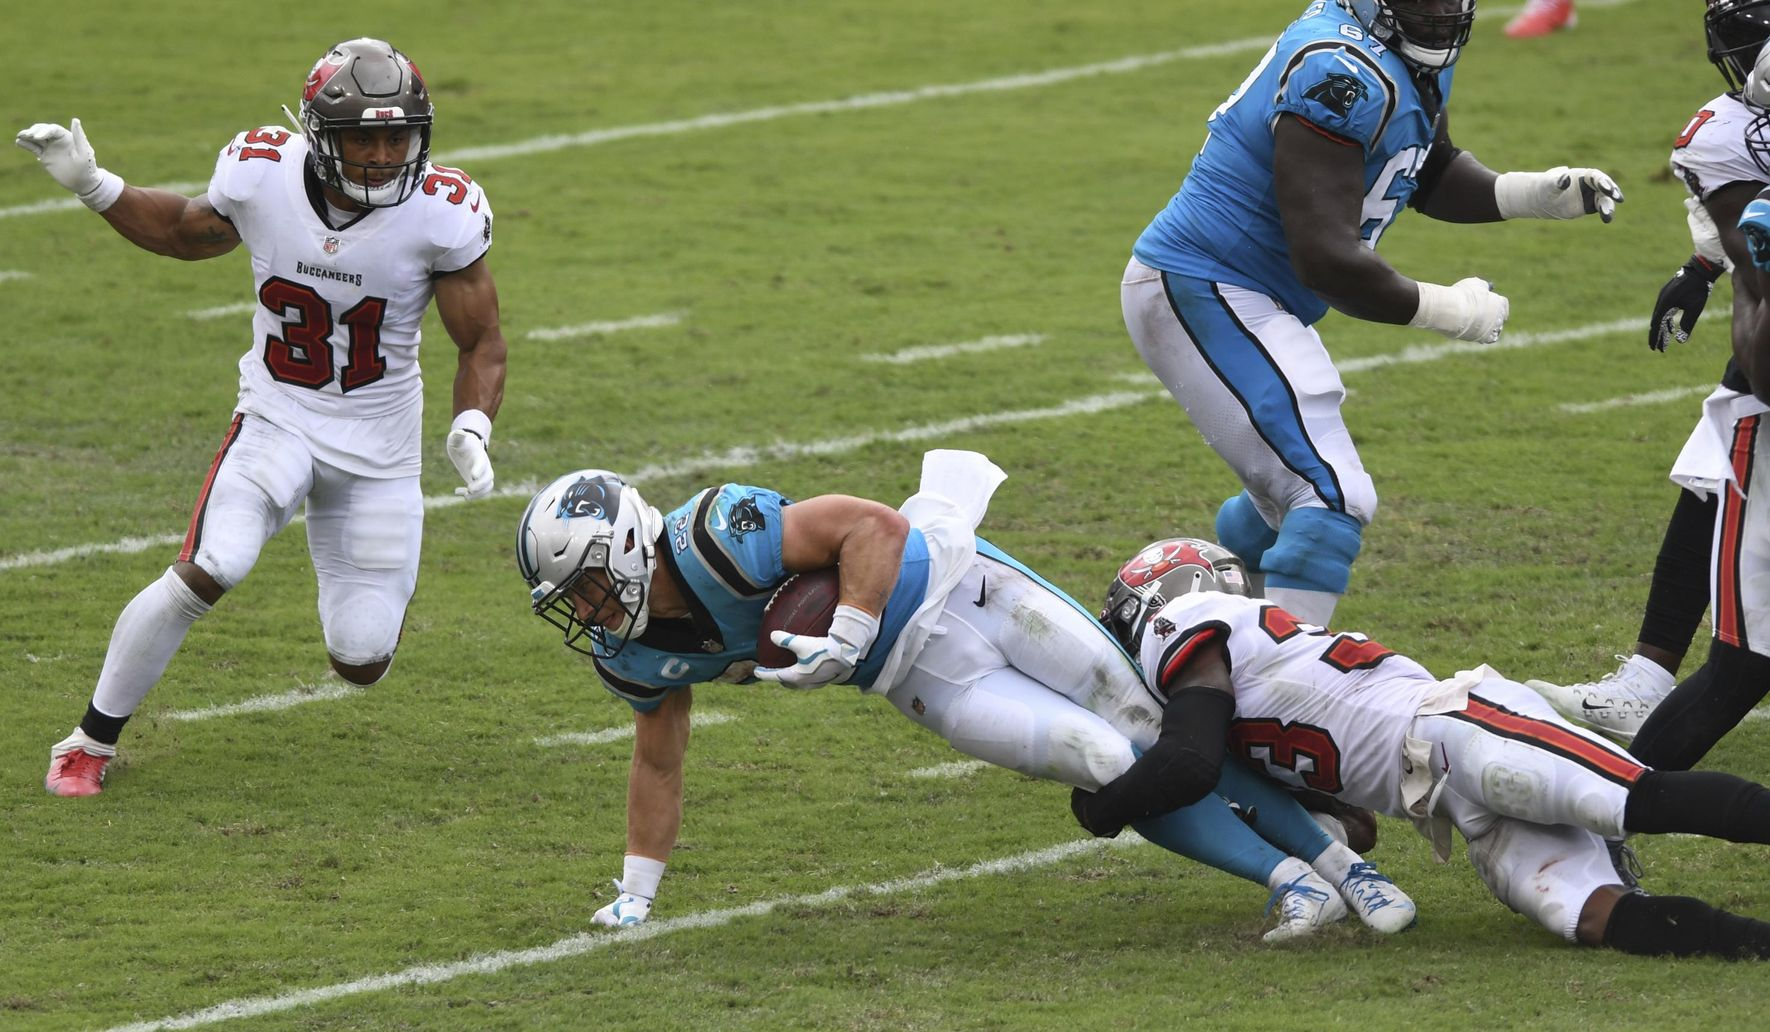 Panthers_buccaneers_football_98521_c0-0-2943-1716_s1770x1032